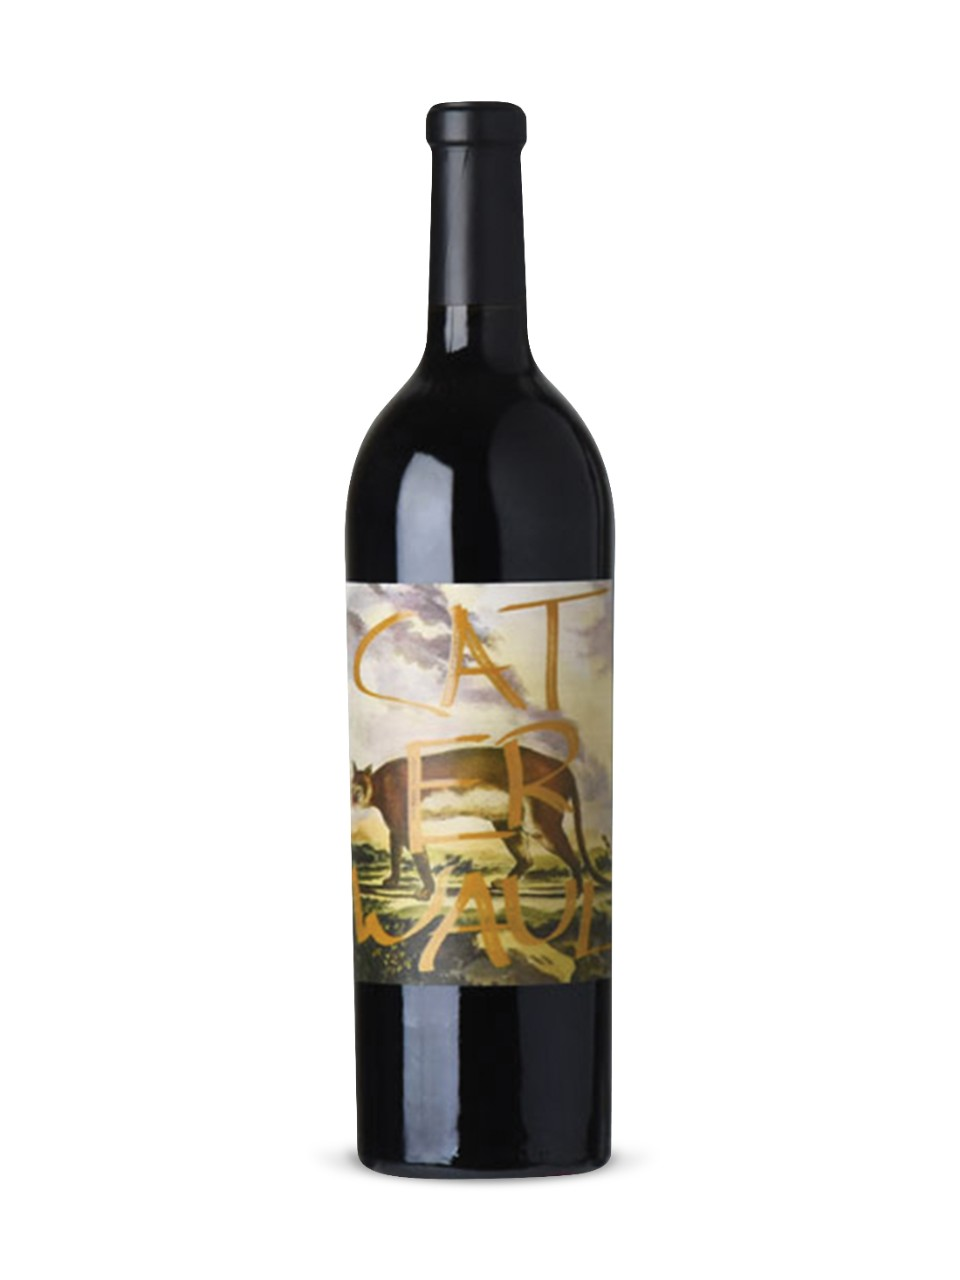 Caterwaul Cabernet Sauvignon 2018 from LCBO